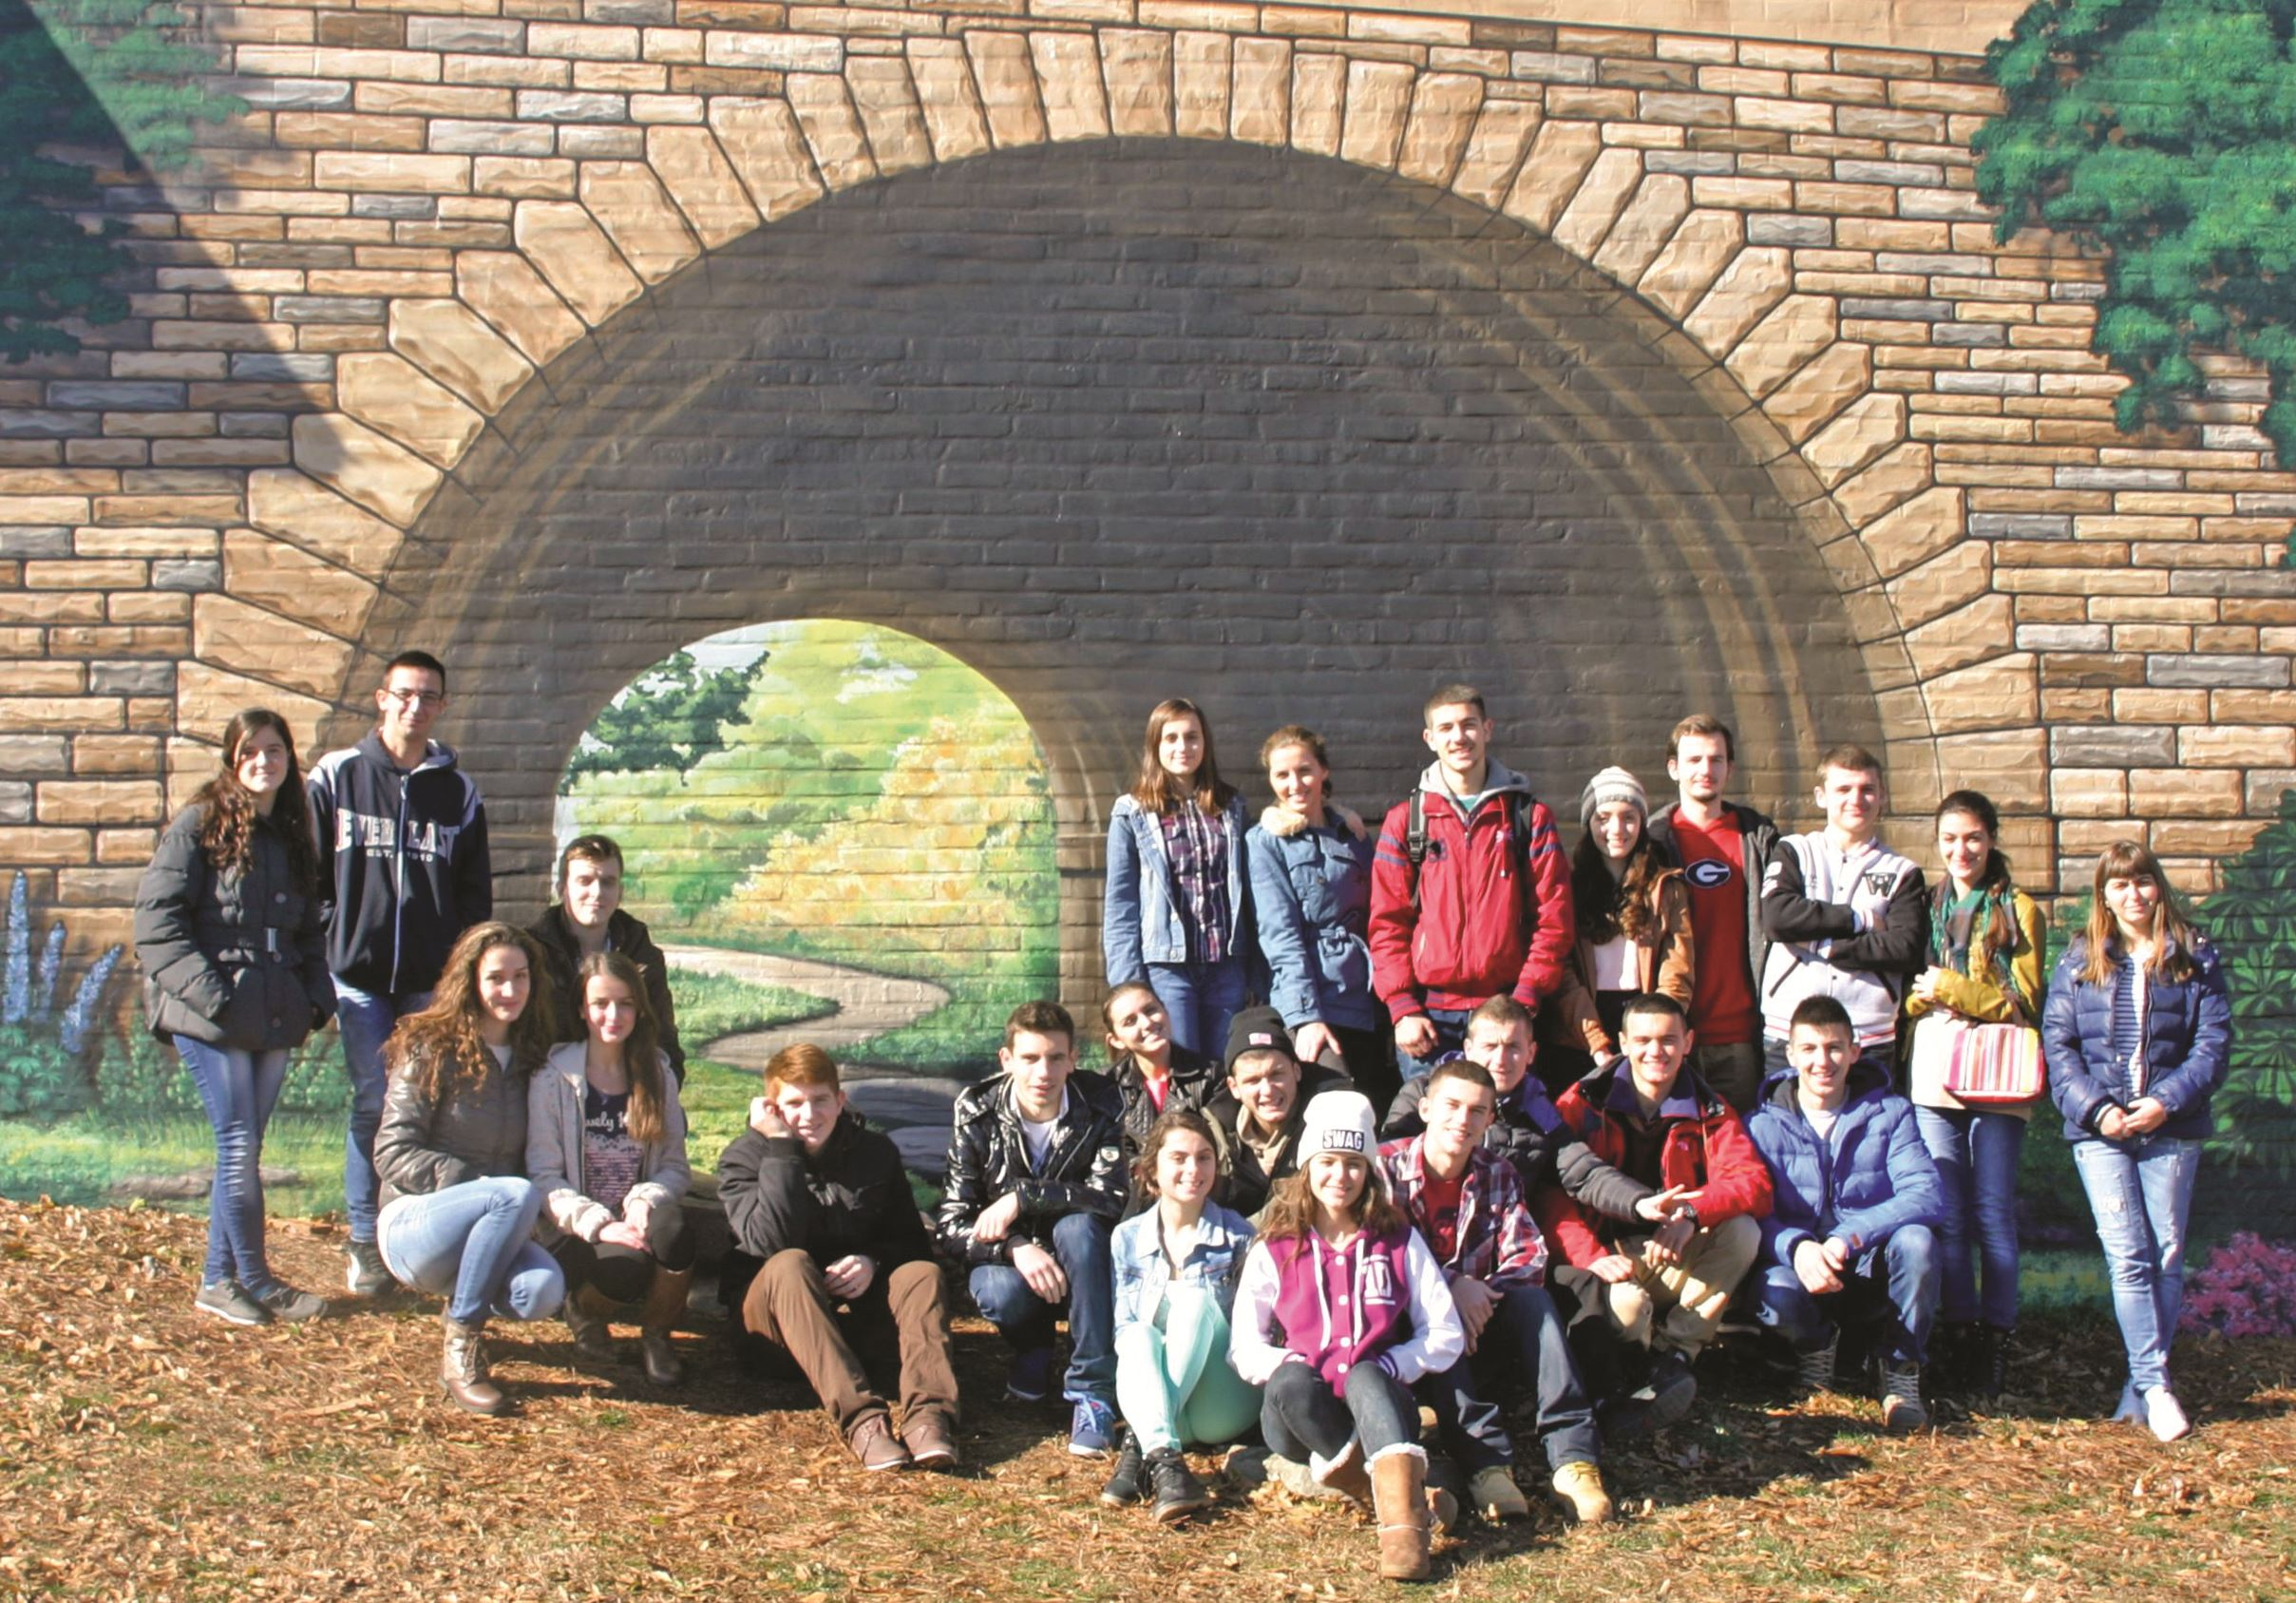 A student group poses at Lilburn Tunnel Bridge Mural on Railroad Avenue